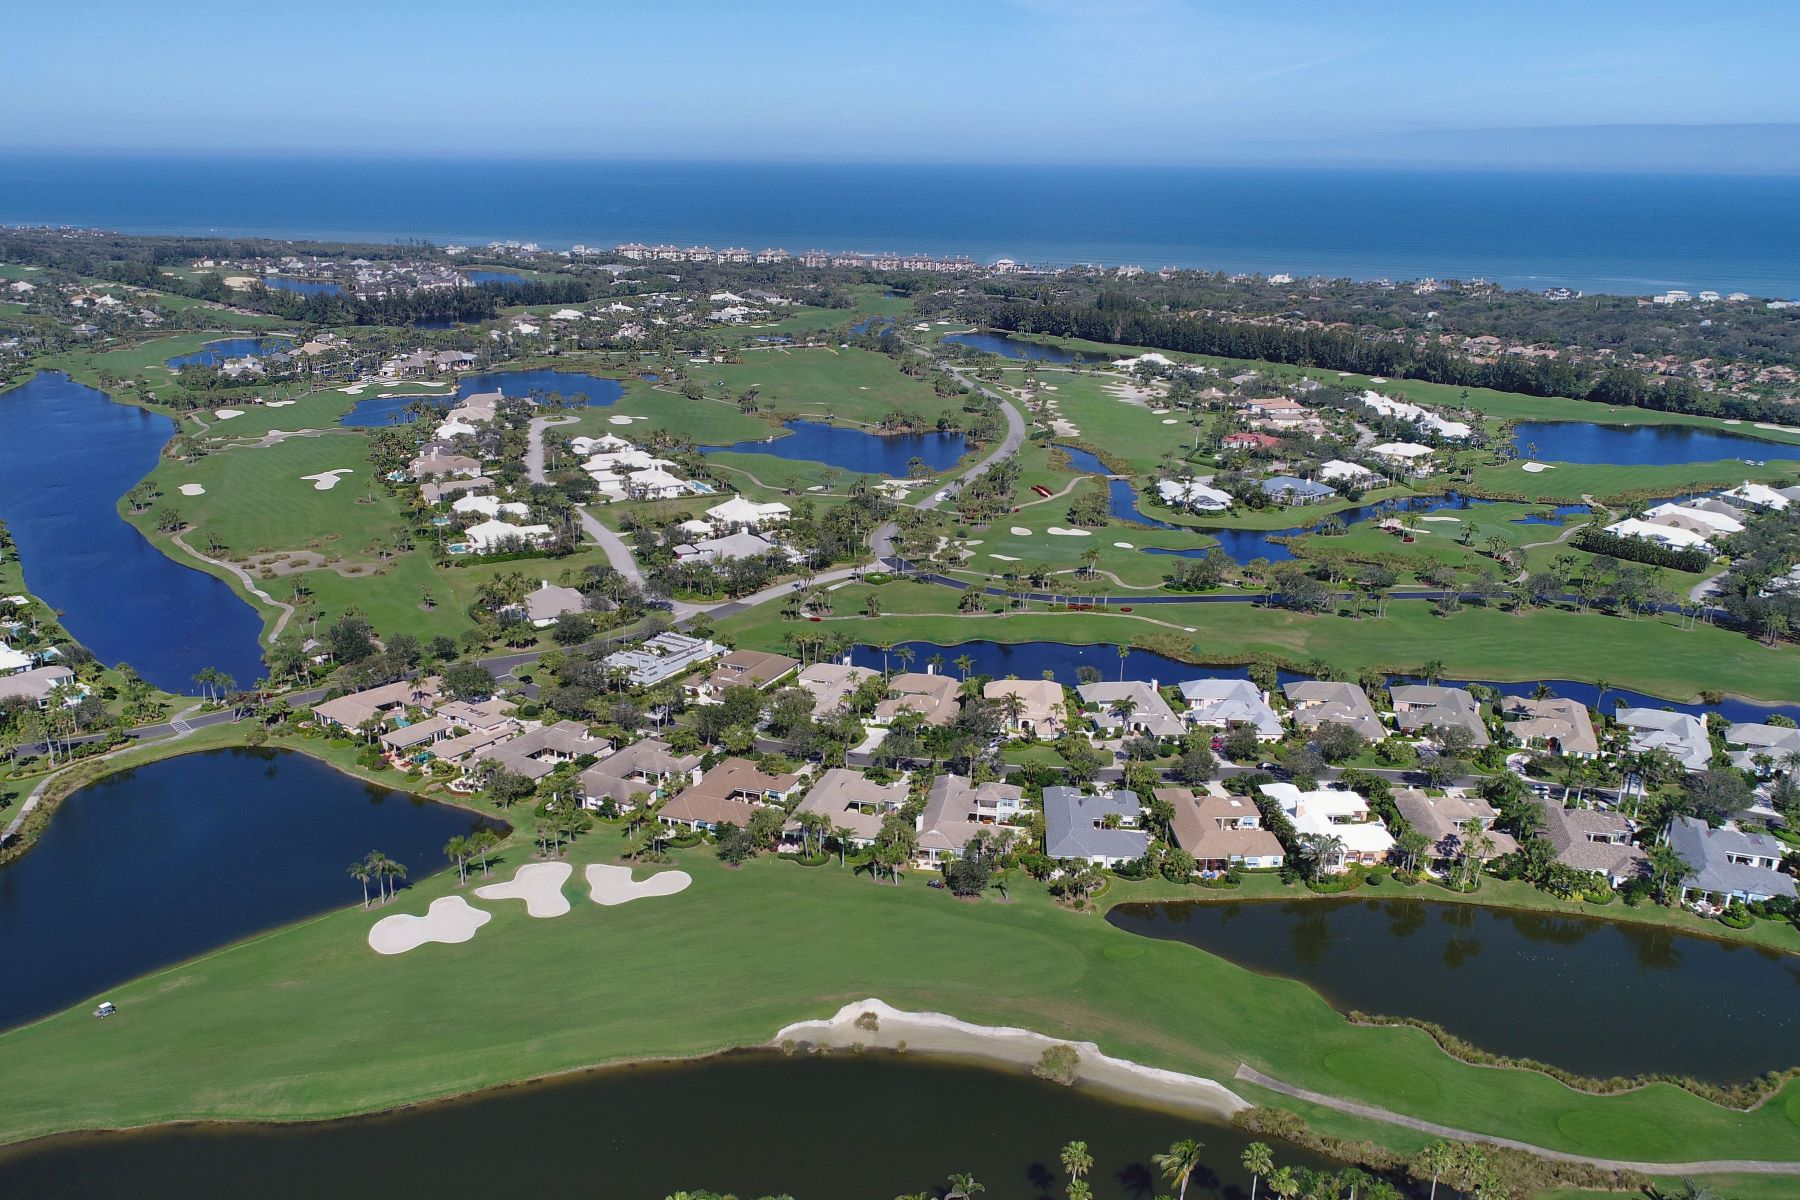 Property for Sale at Orchid Island Homesite 942 Orchid Point Way Vero Beach, Florida 32963 United States